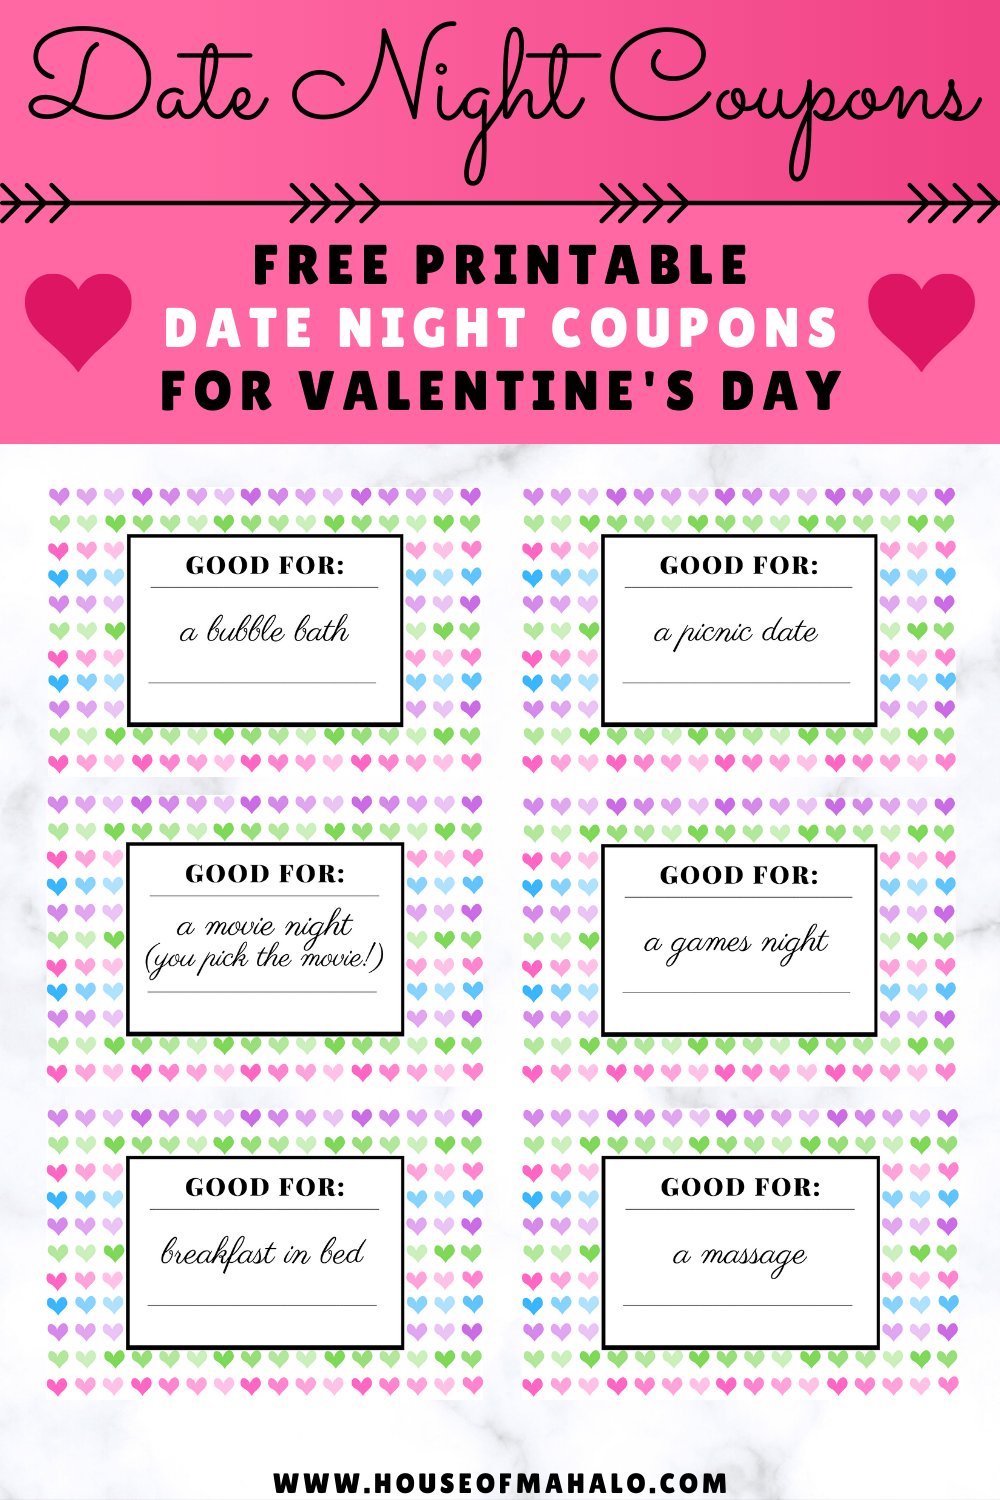 Free Printable Date Night Coupons